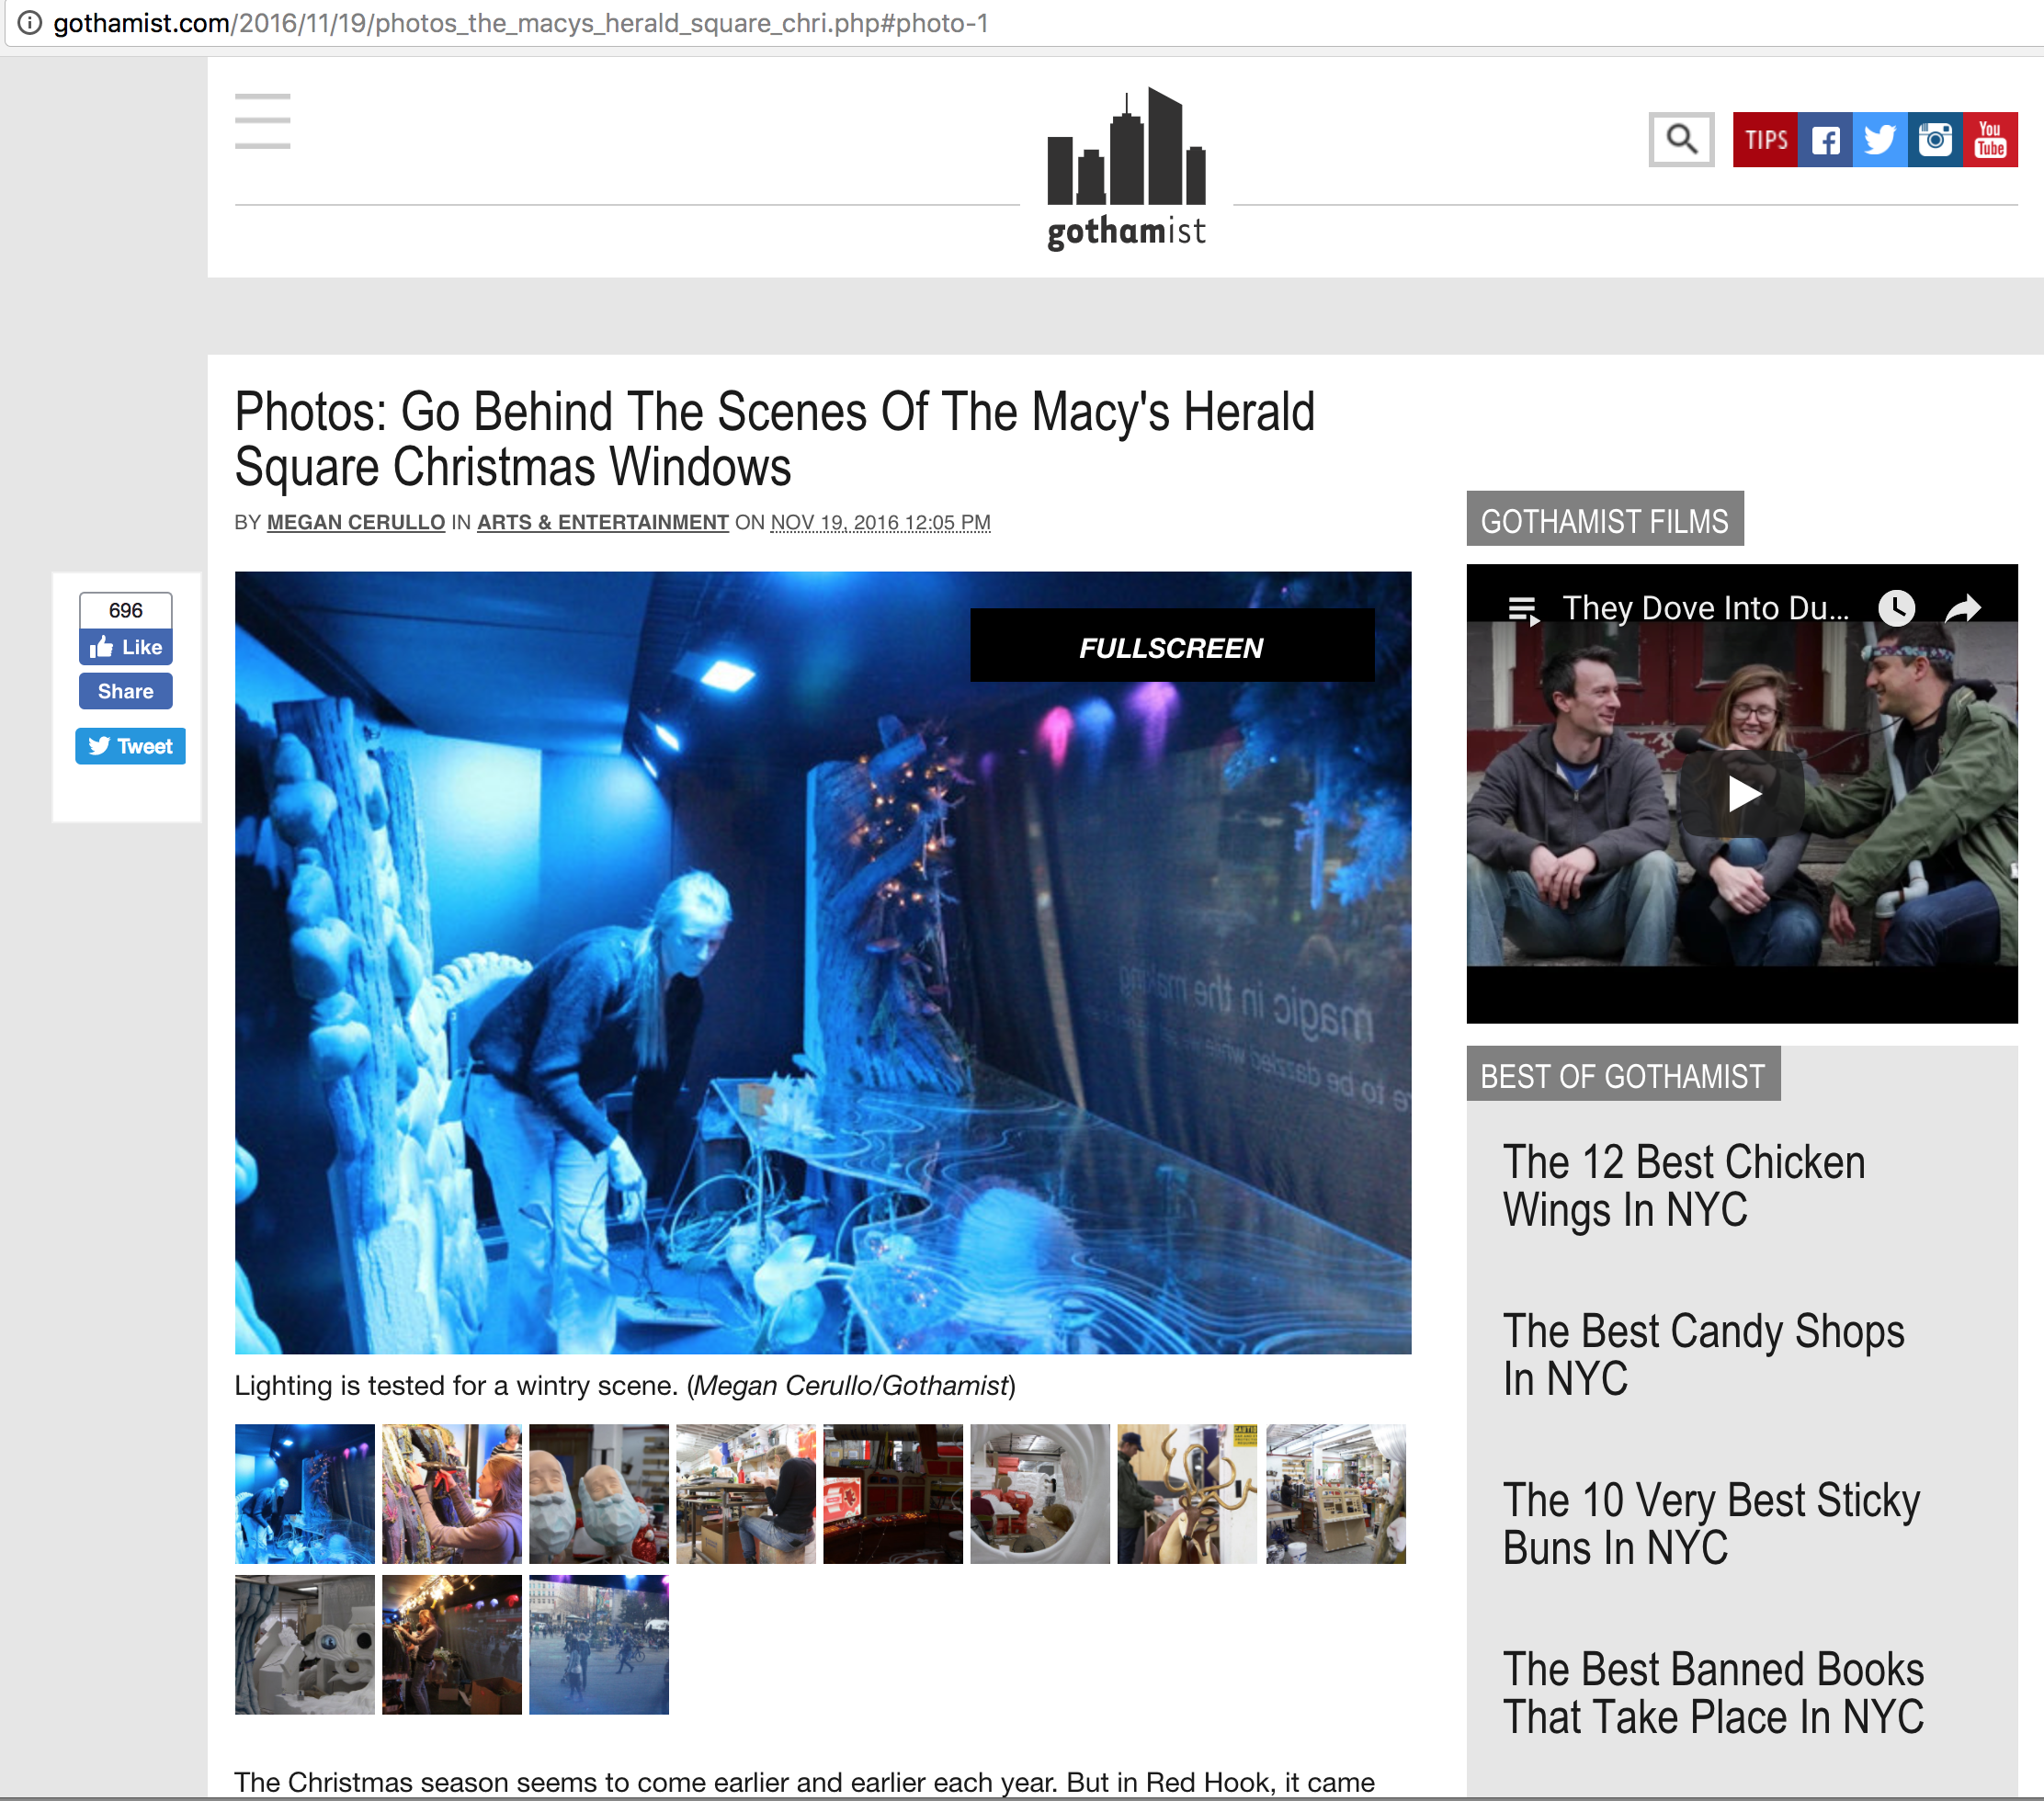 Gothamist - Go Behind The Scenes of The Macy's Herald Square Christmas Windows